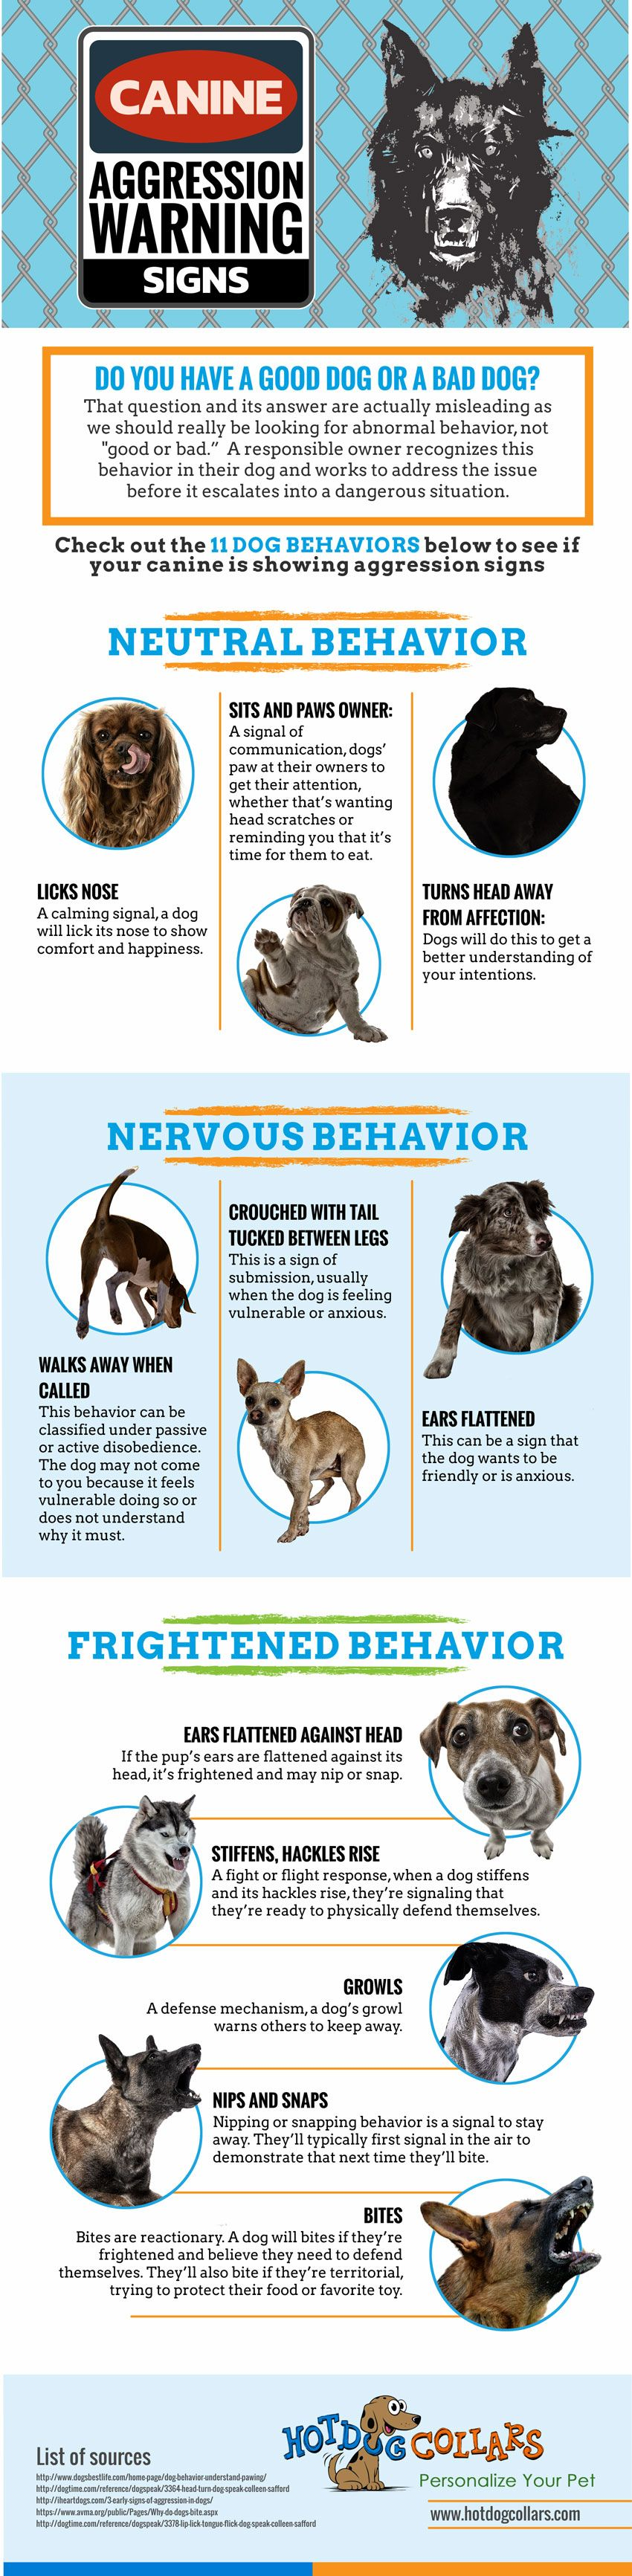 Canine Aggression Warning Signs Infographic